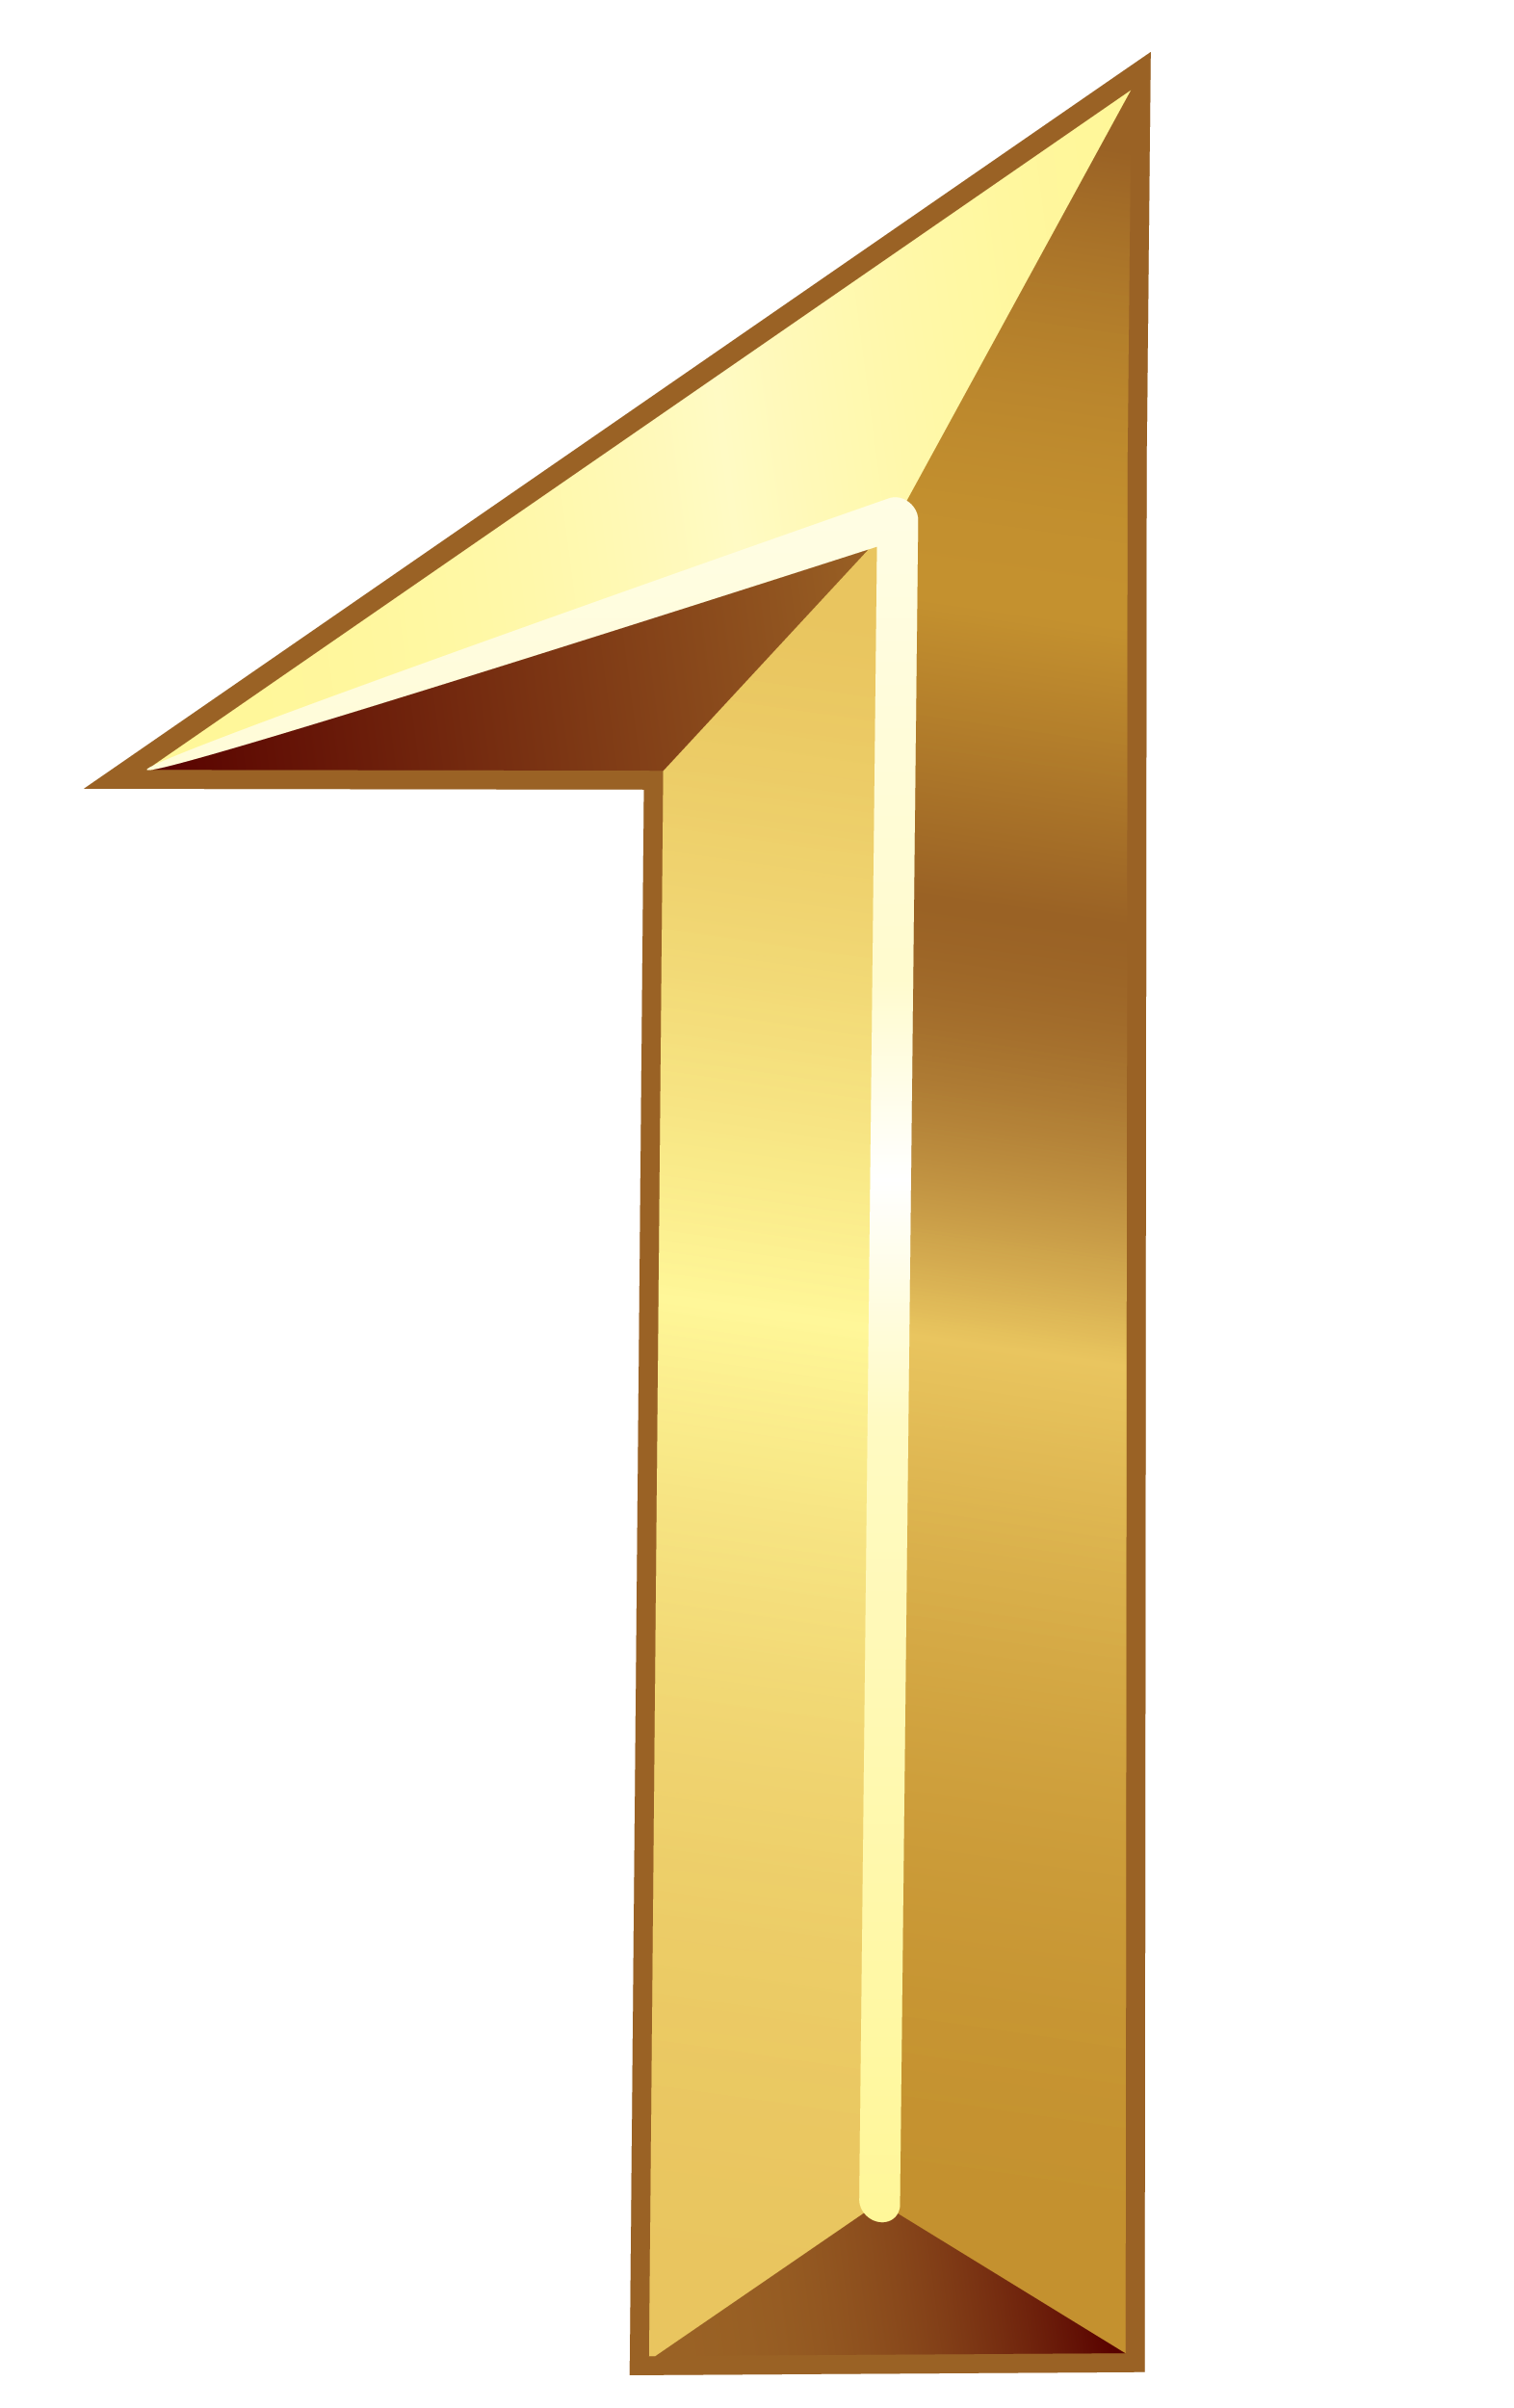 Gold one png image. Number 1 clipart 0ne